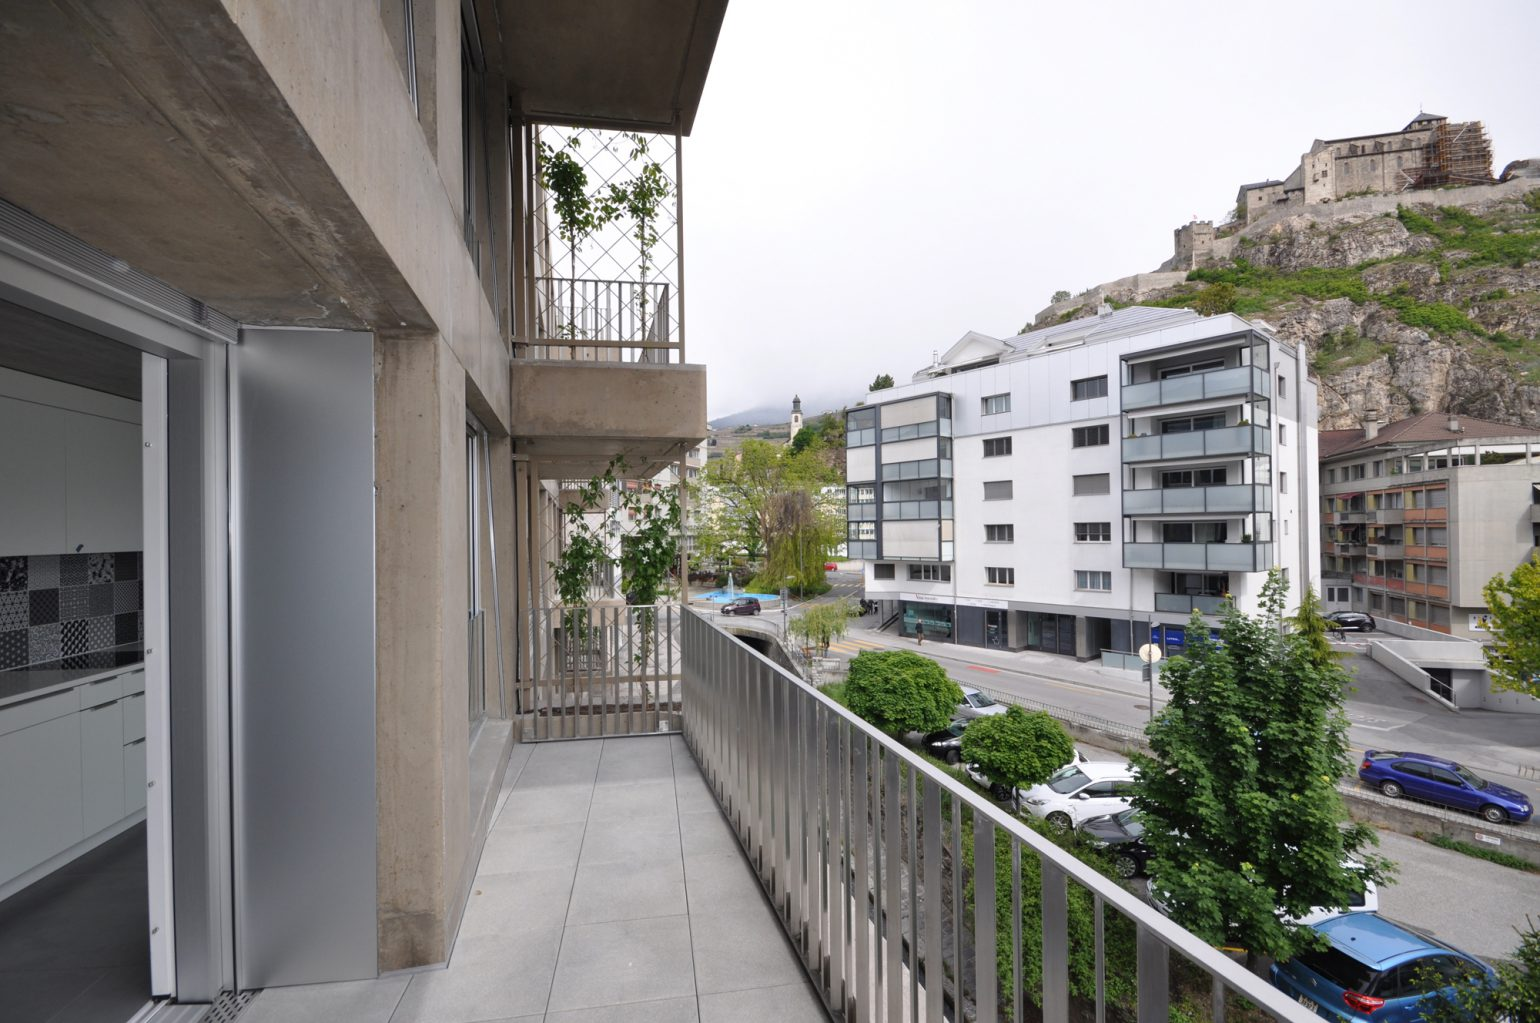 immeuble_dixence_sion_meyer_architecture_sion_05